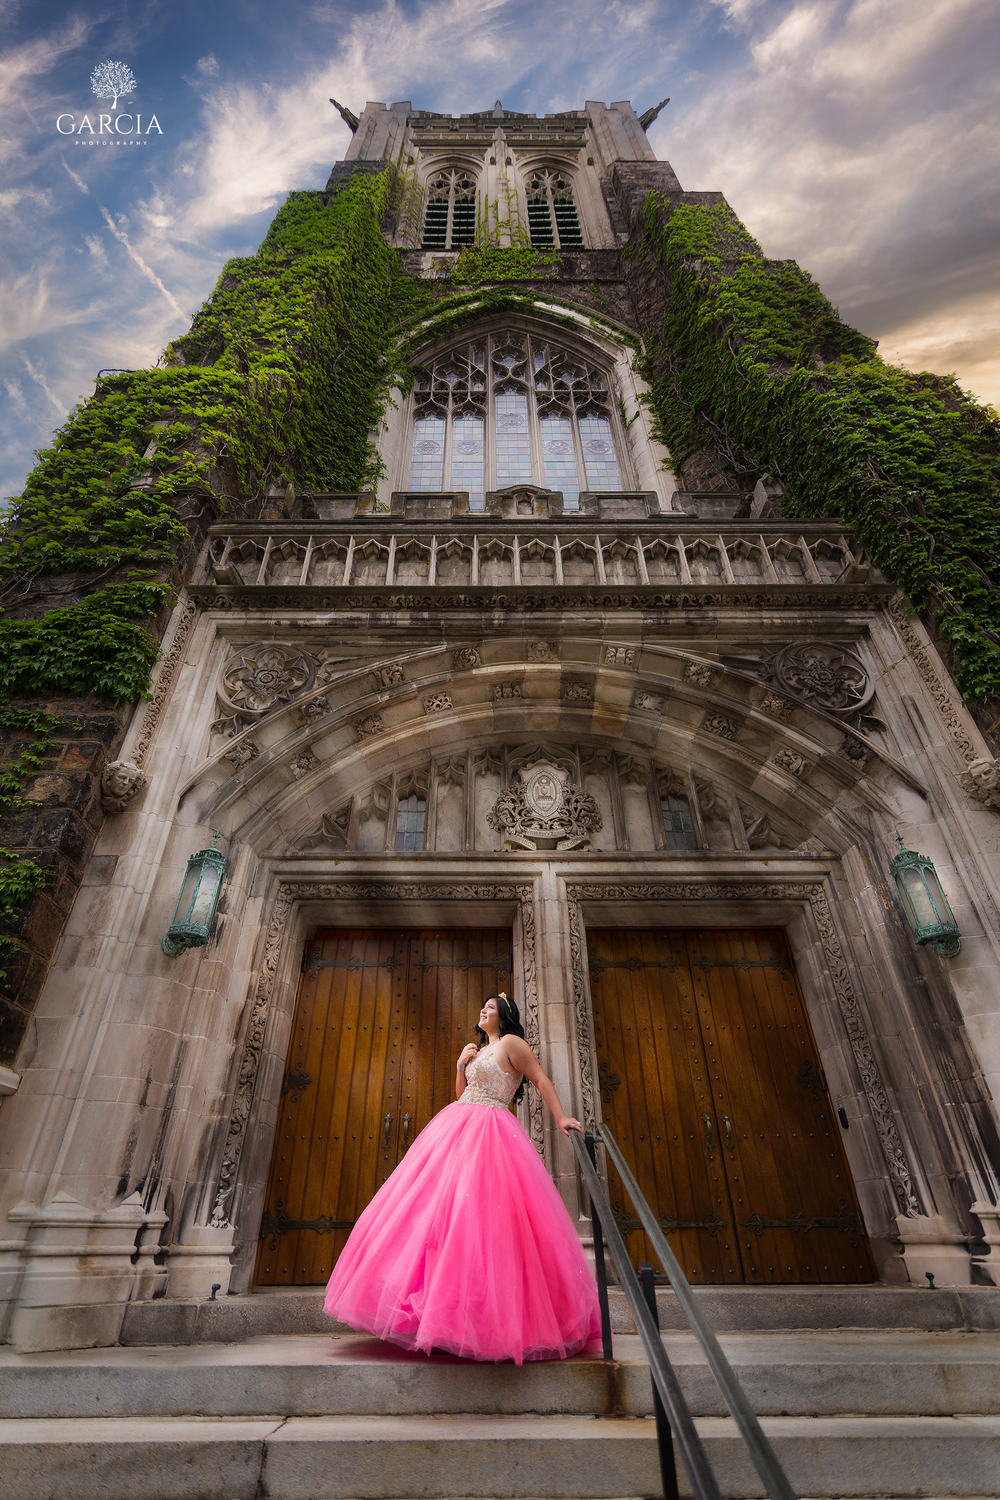 Alexa-Quince-Portrait-Garcia-Photography-9183-edit.png